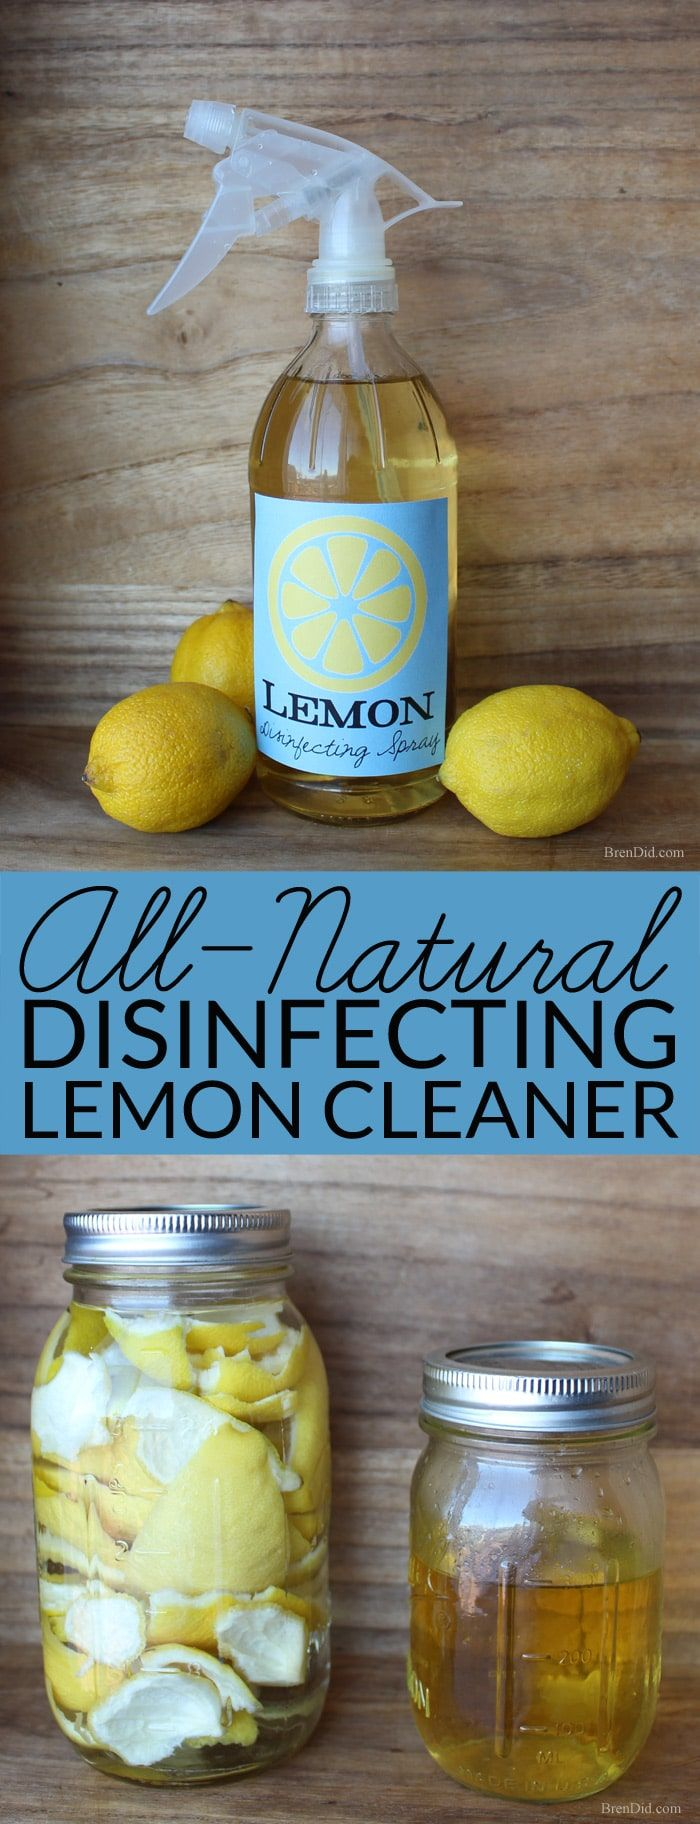 Lemon Disinfectant Spray Cleaner, All-Natural Disinfectant Spray Cleaner, Natural Disinfectant Spray Cleaner, green cleaning  via @brendidblog